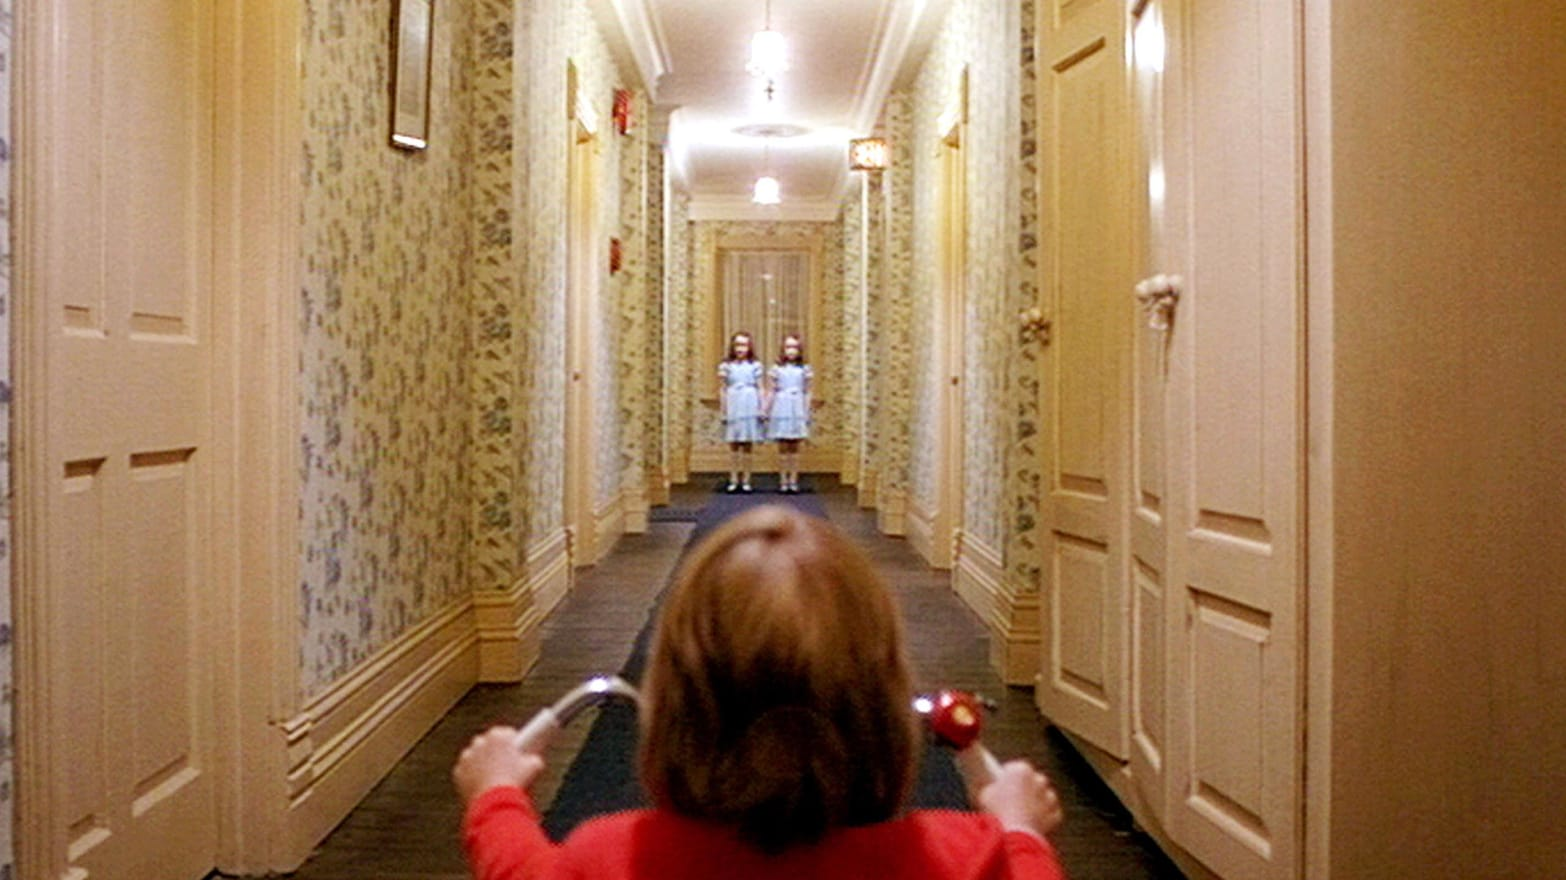 fddb6c9e43e The Craziest Theories on  The Shining  in  Room 237